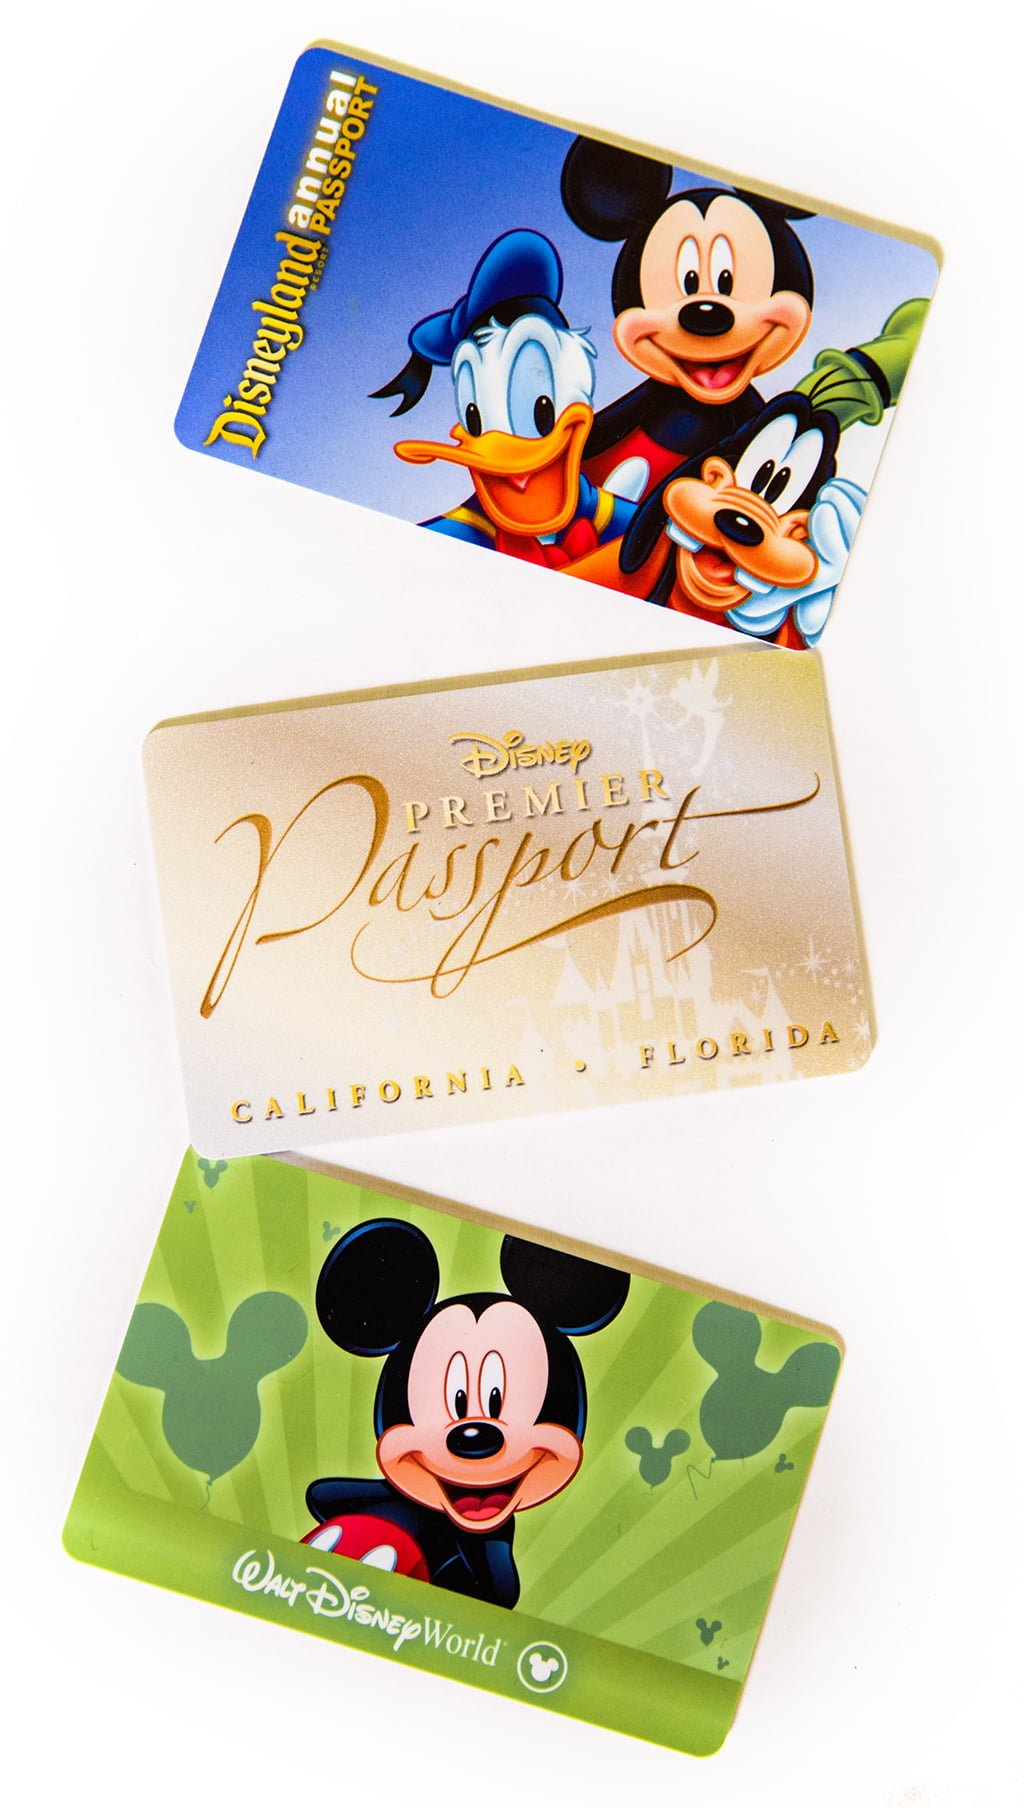 We offer great value Park Tickets for all the main attractions in Orlando, including Disney, Universal, Sea World and Busch Gardens. We've been doing this for over 10 years and pride ourselves on our prices and customer service.